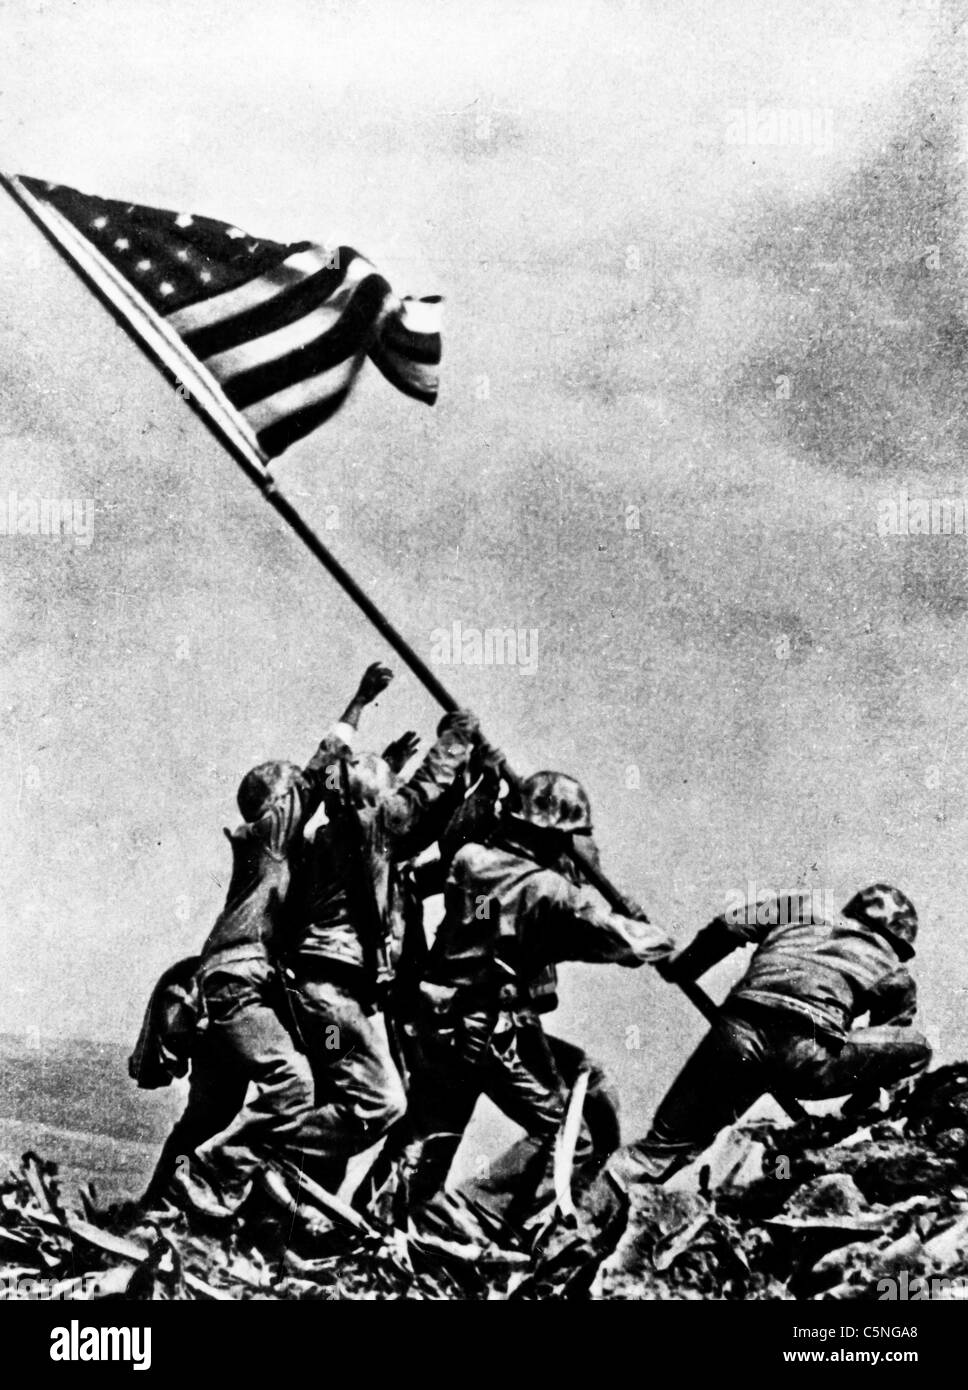 raised the American flag after the battle of Iwo Jima, 1945 - Stock Image